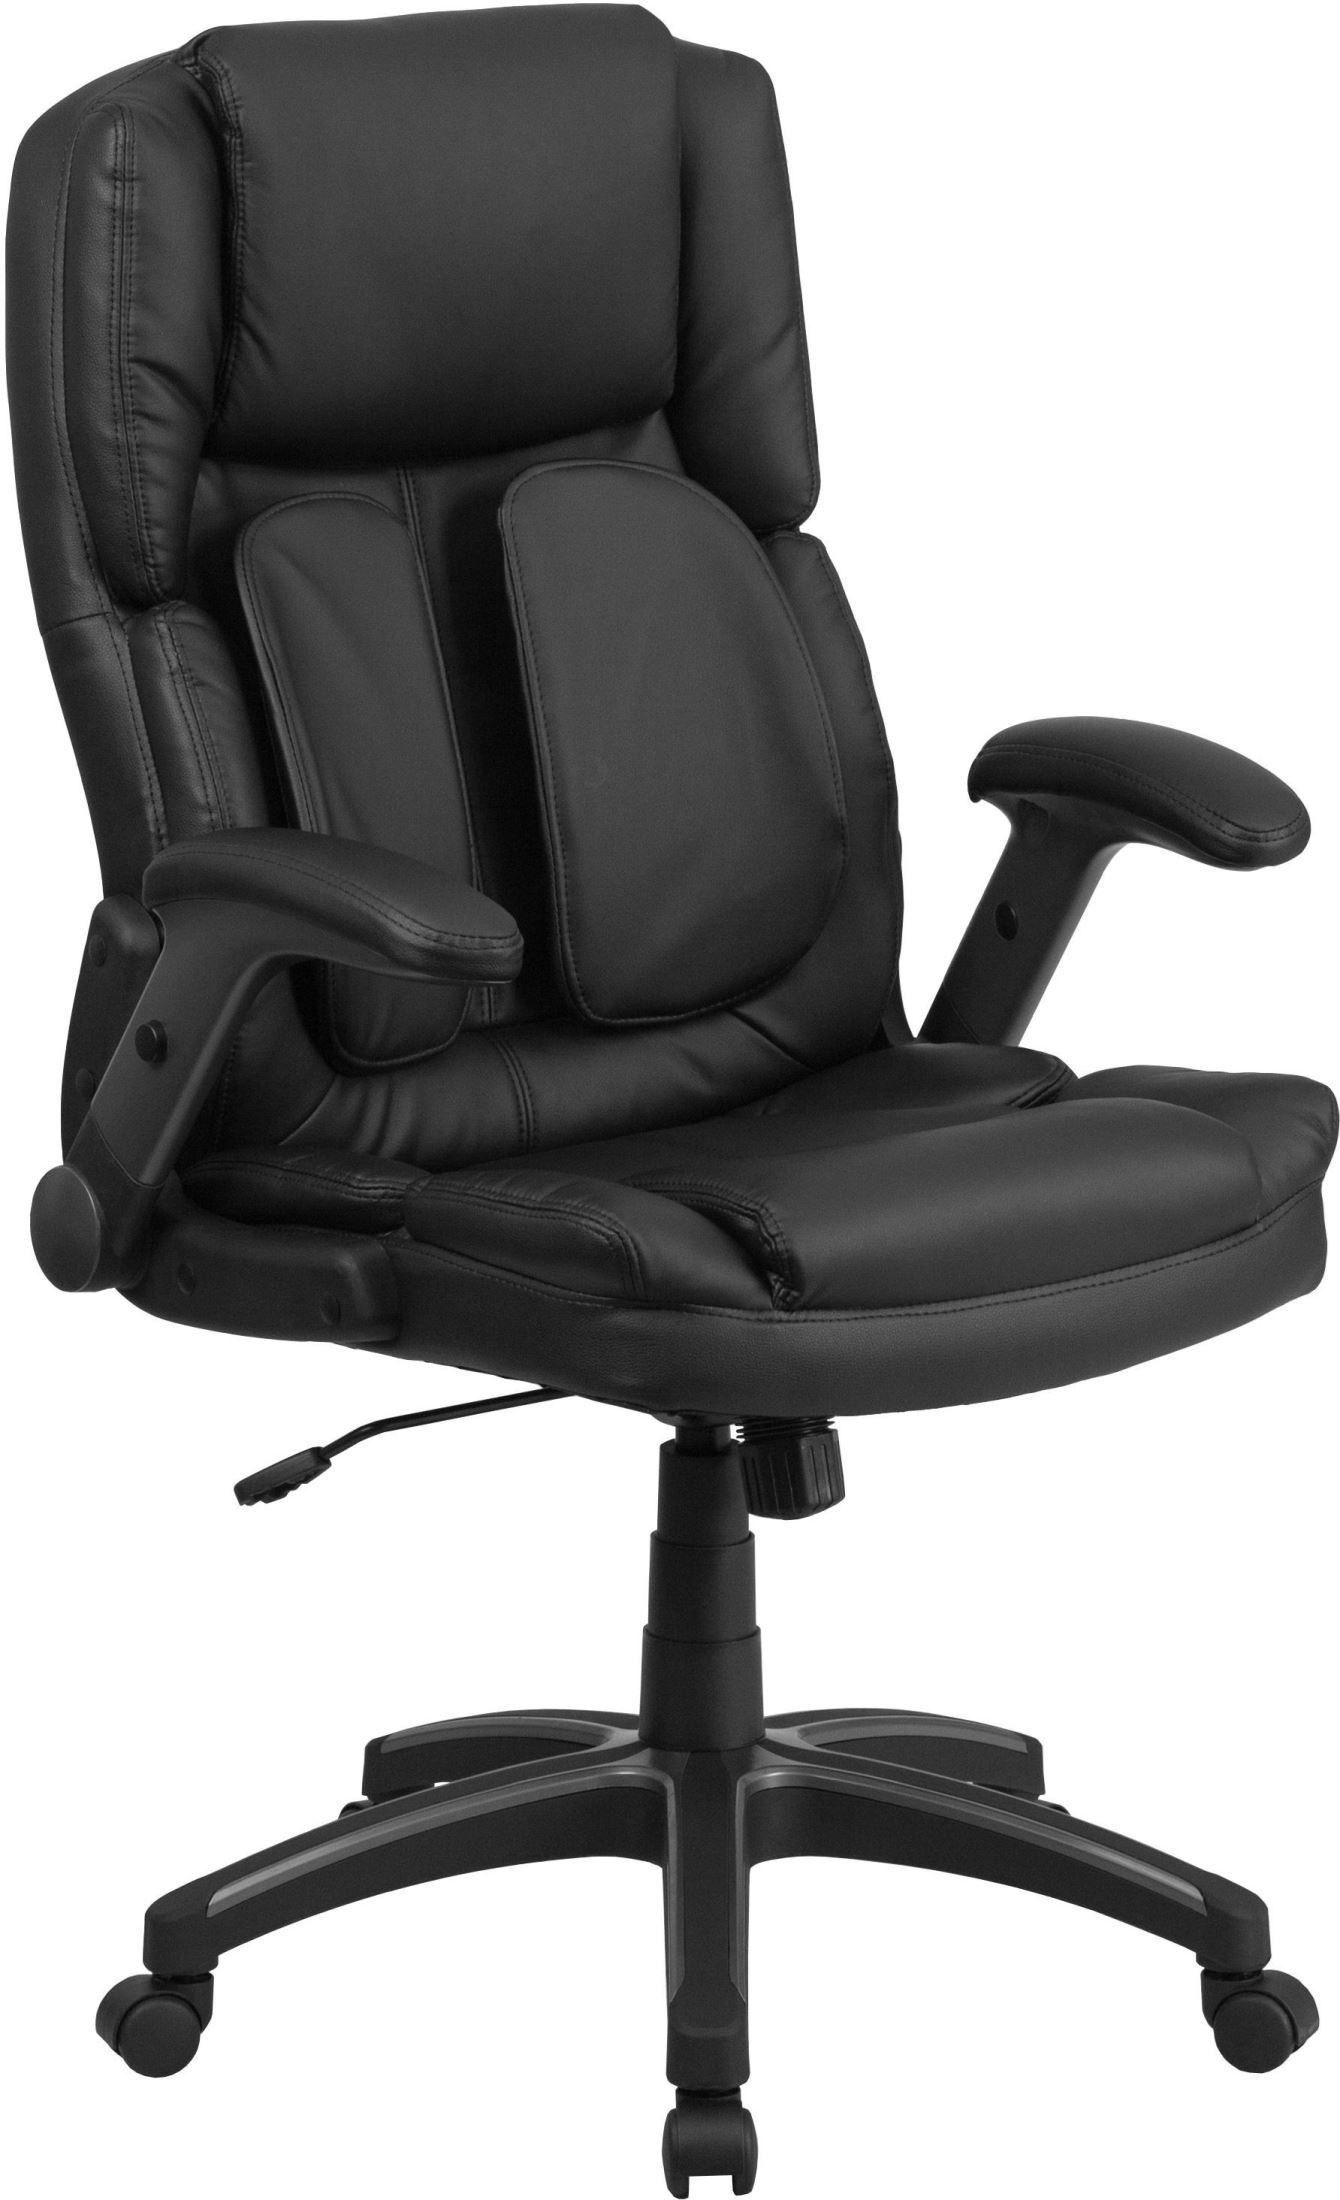 coleman lumbar quattro chair office chairs home depot extreme comfort high back black executive flip up arms